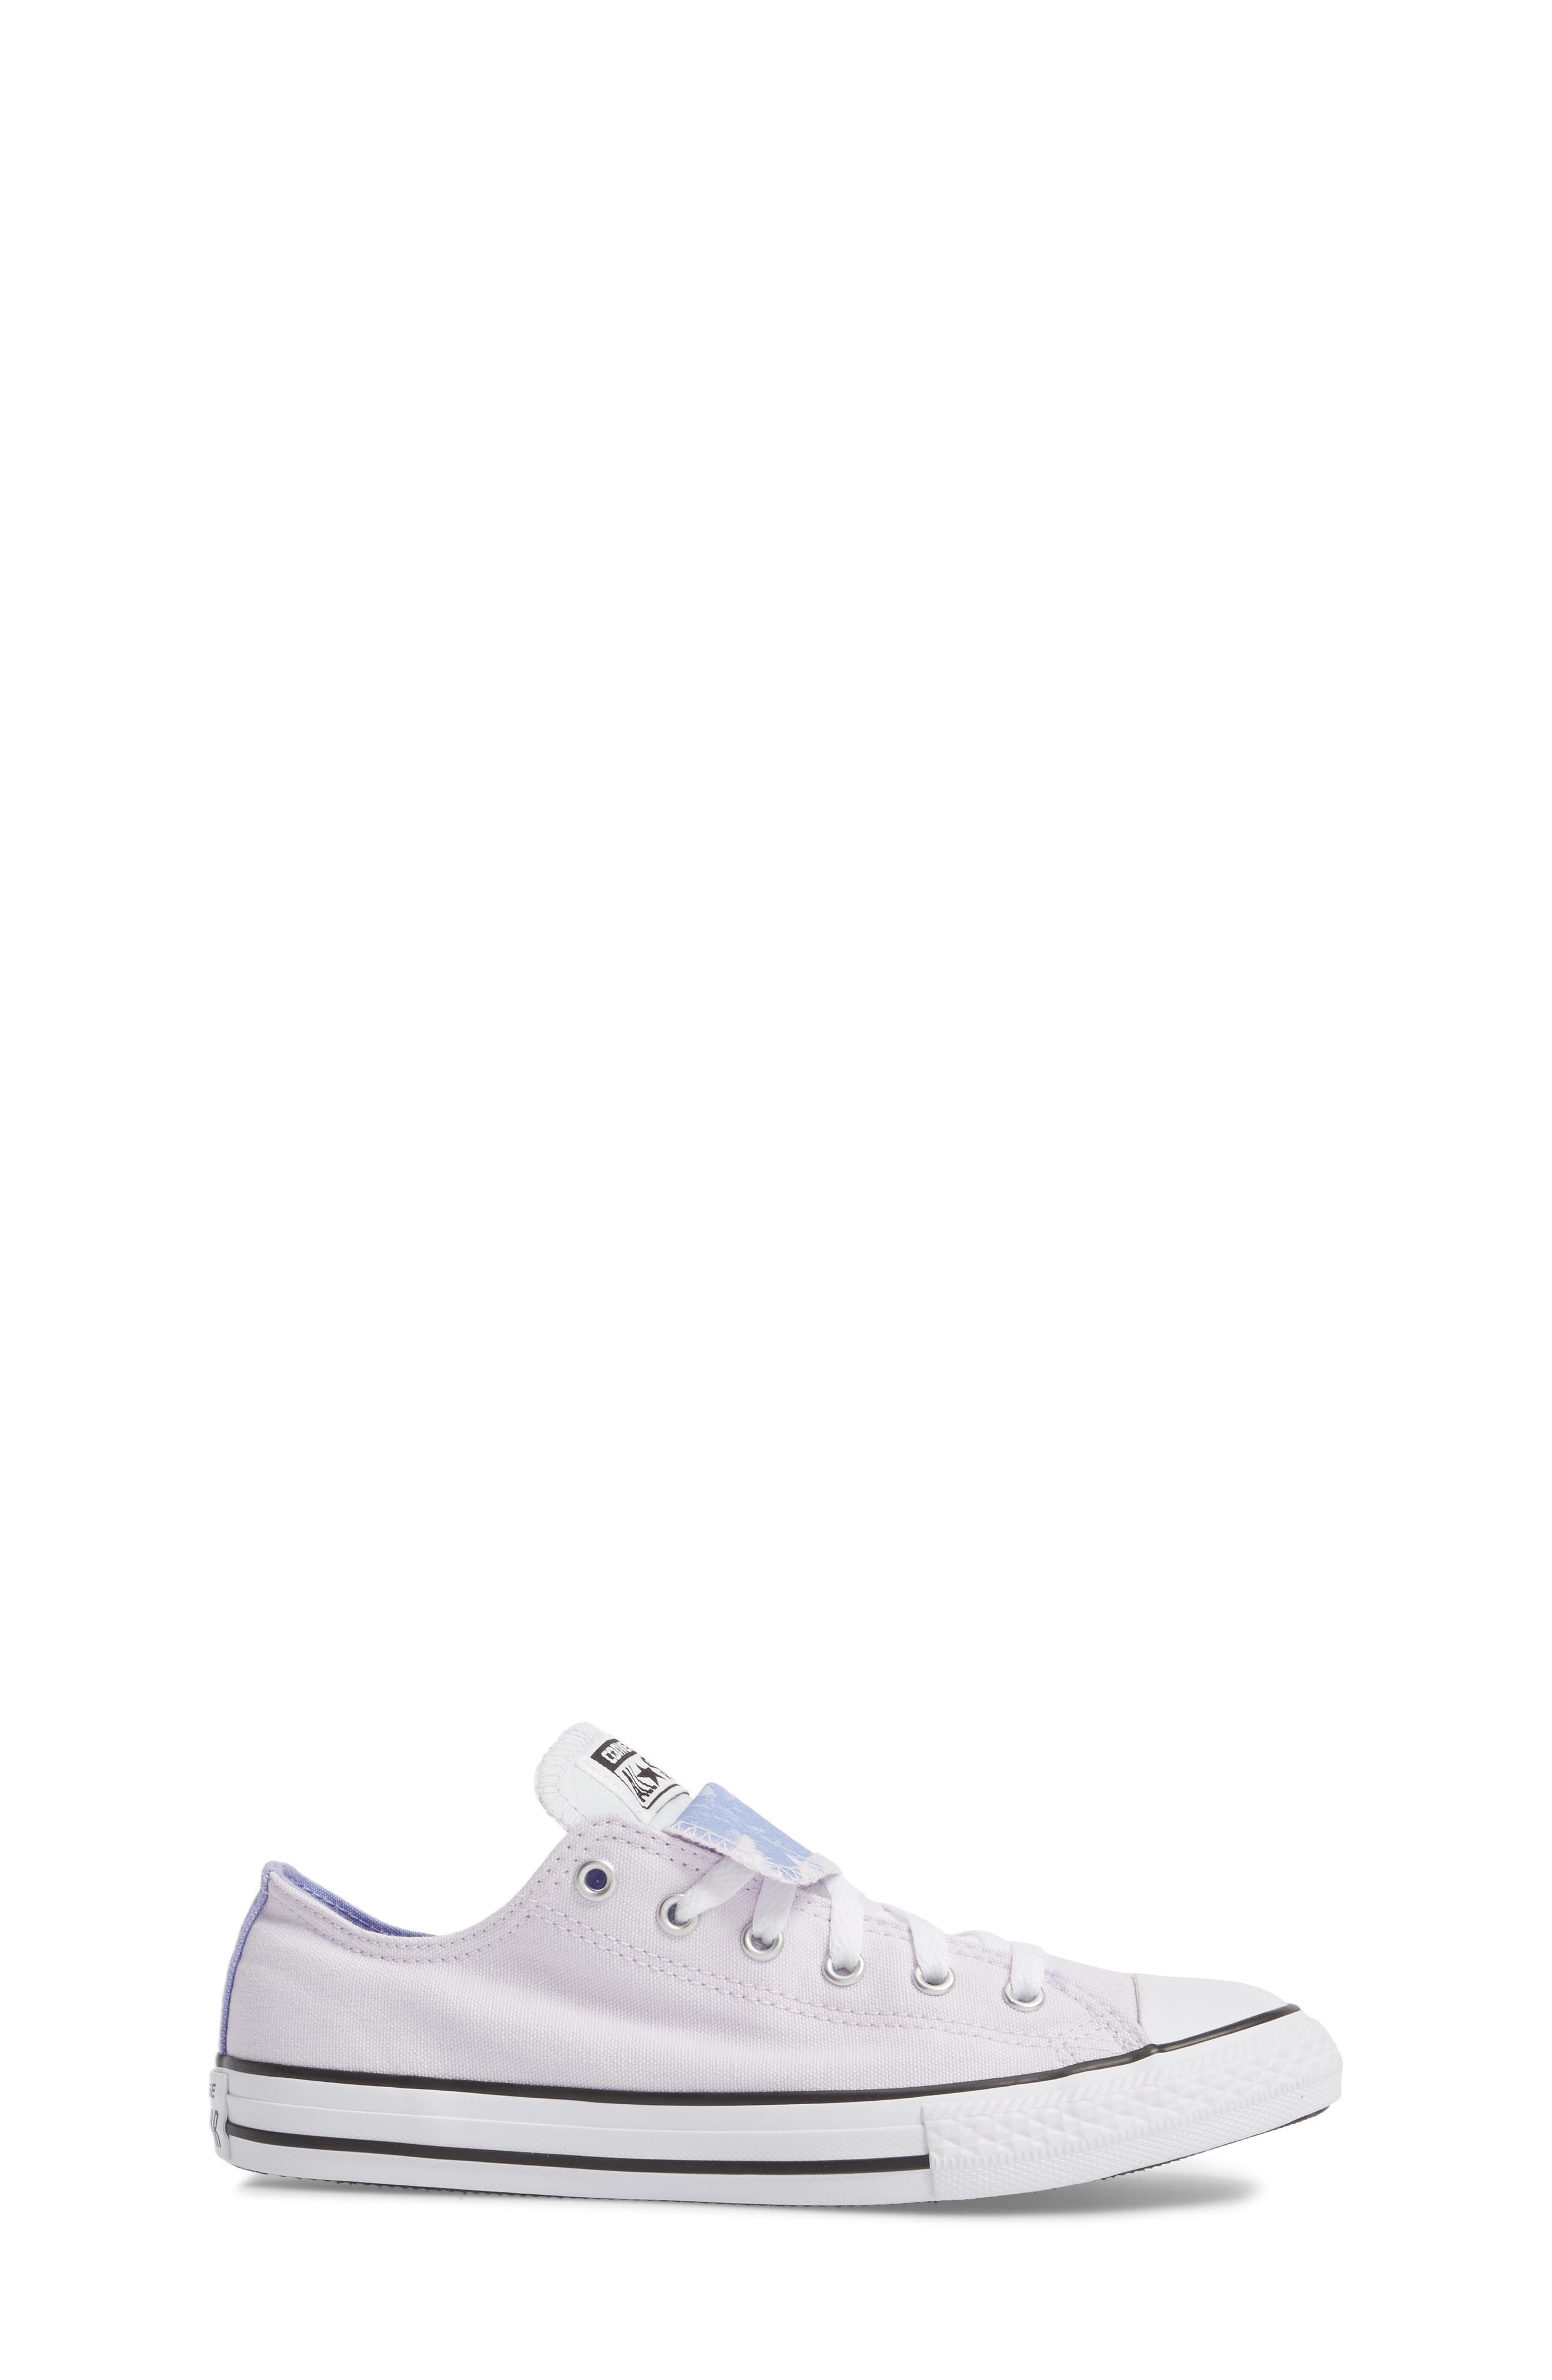 Chuck Taylor<sup>®</sup> All Star<sup>®</sup> Palm Tree Double Tongue Low Top Sneaker,                             Alternate thumbnail 3, color,                             551